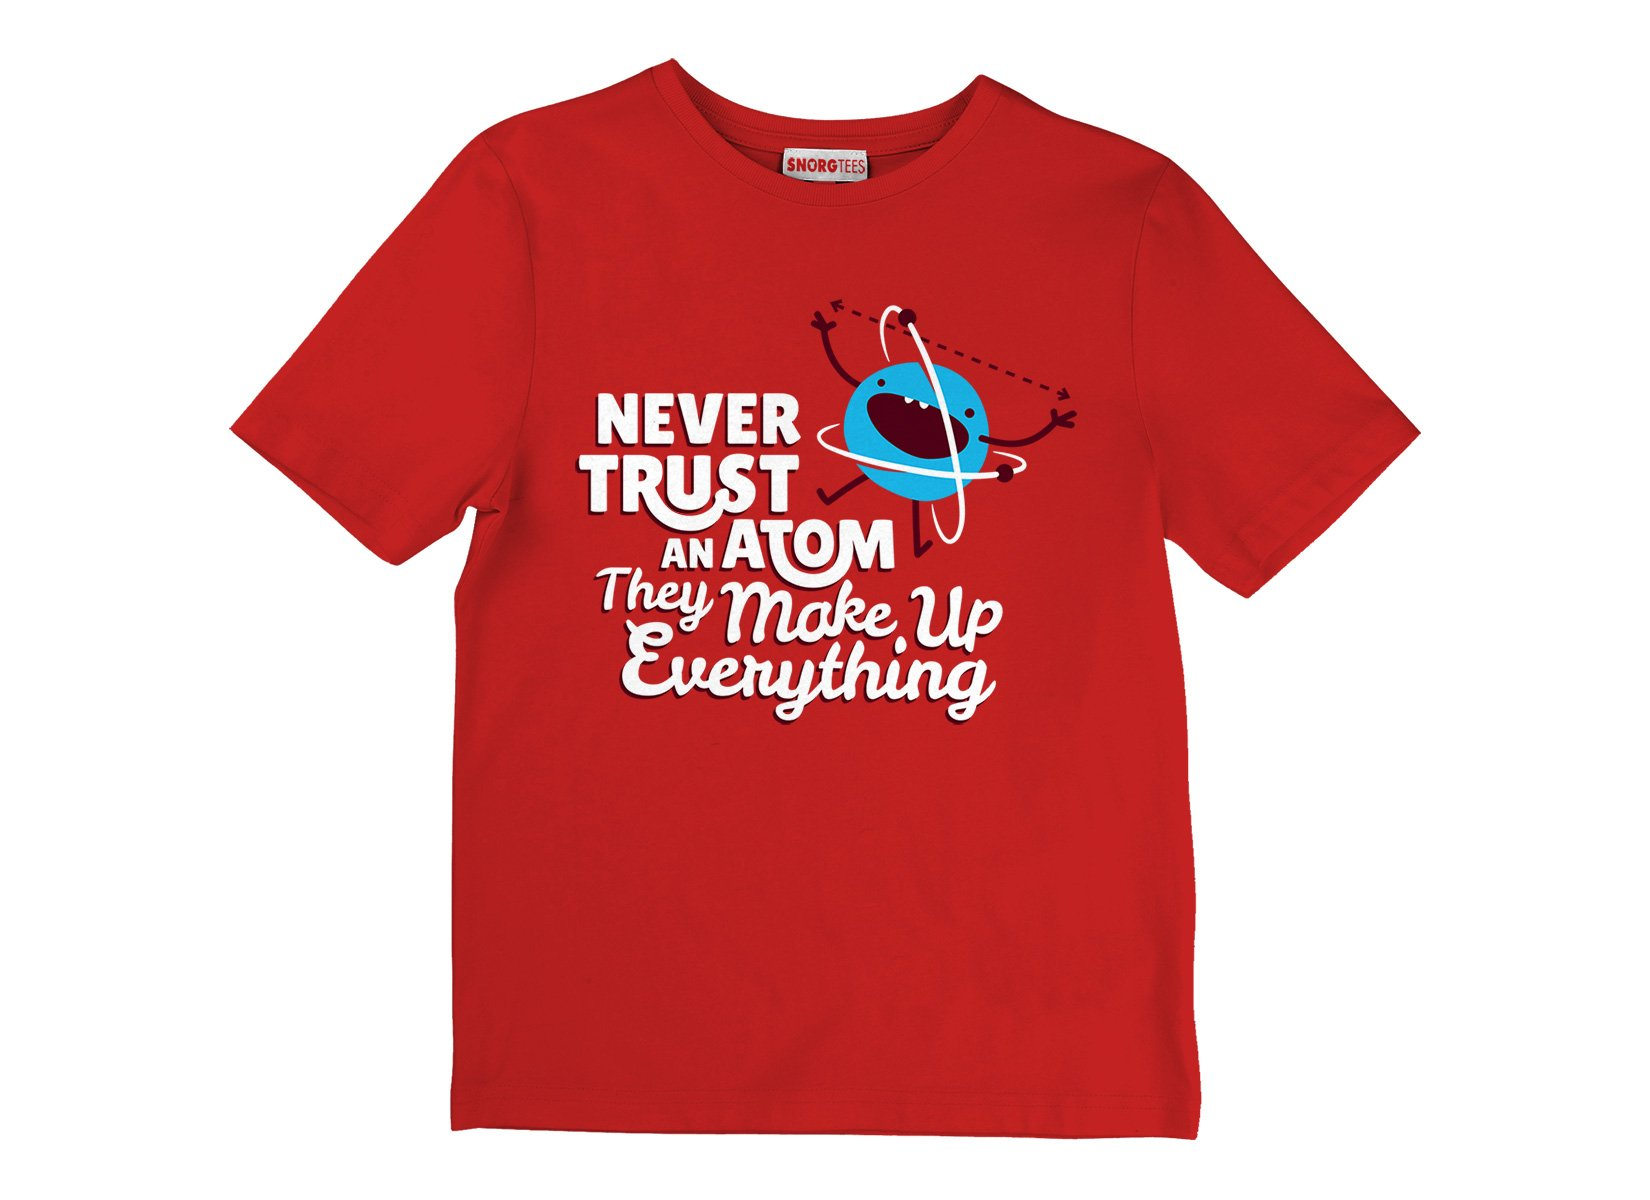 Never Trust An Atom, They Make Up Everything on Kids T-Shirt